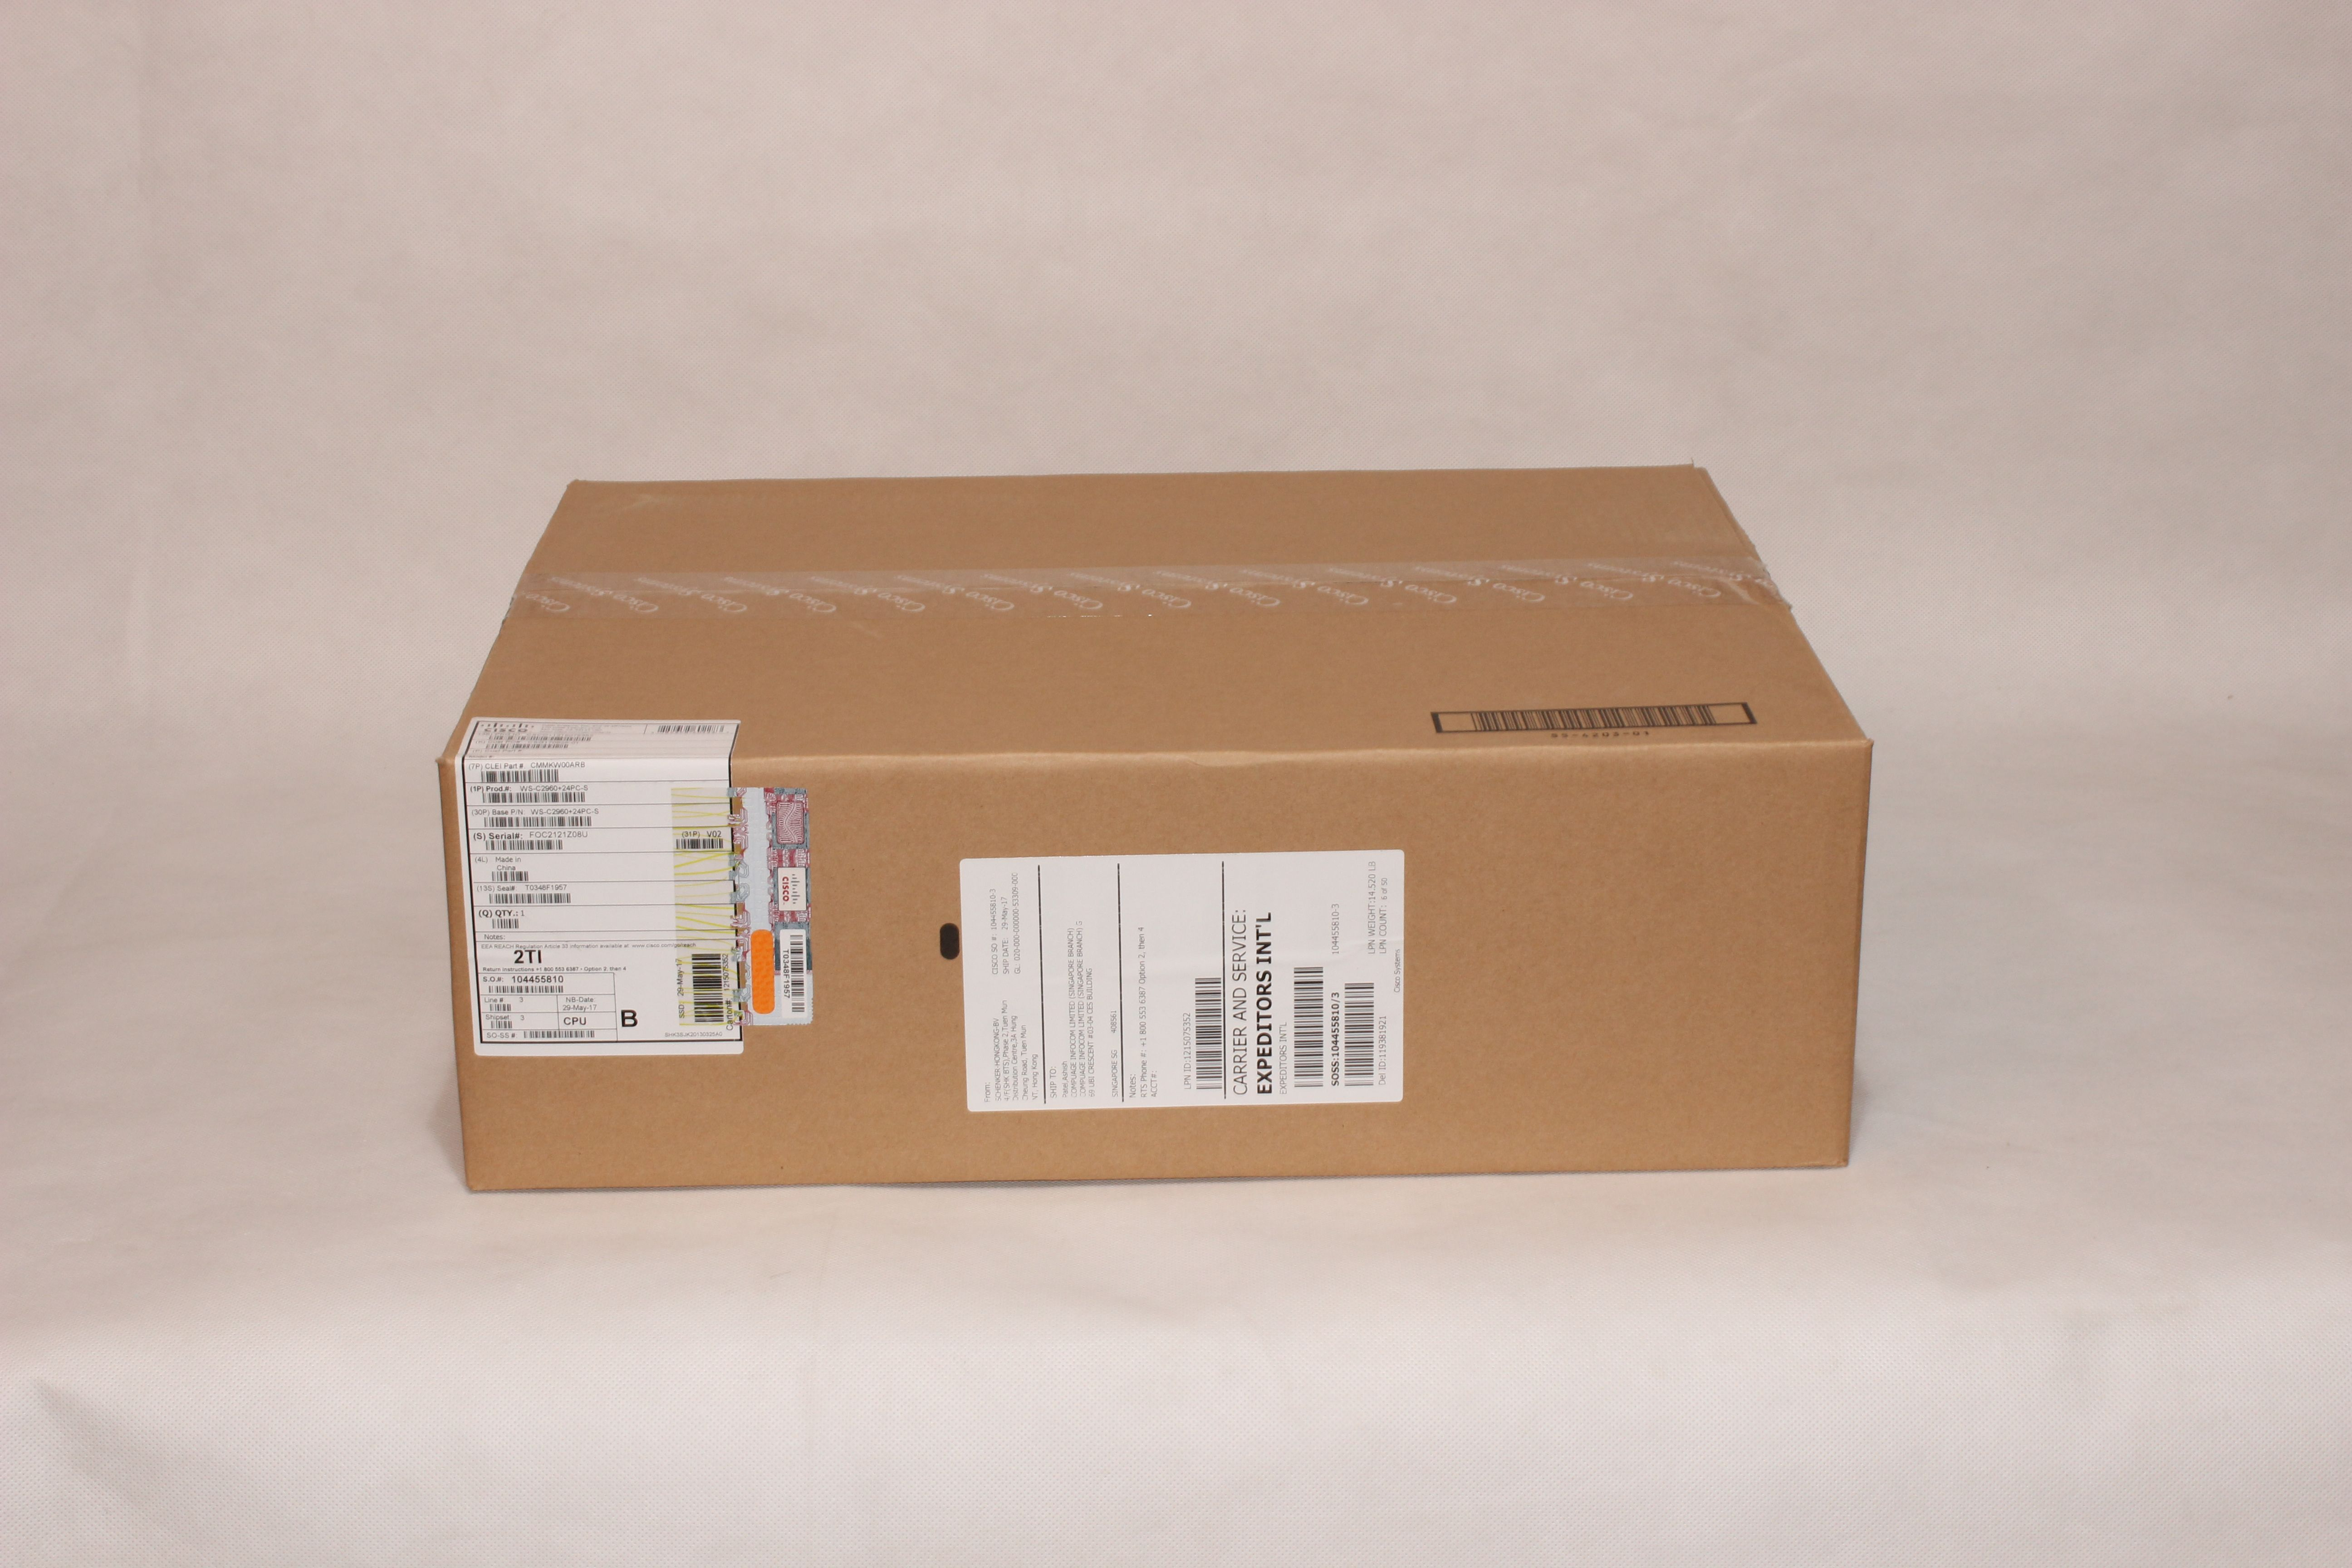 The Well Packaged Cisco Ws C2960 24pc S Technology Pinterest 2960 Diagram And Catalyst Switches Comparison Price Buy Plus Poe Switch 24 Port